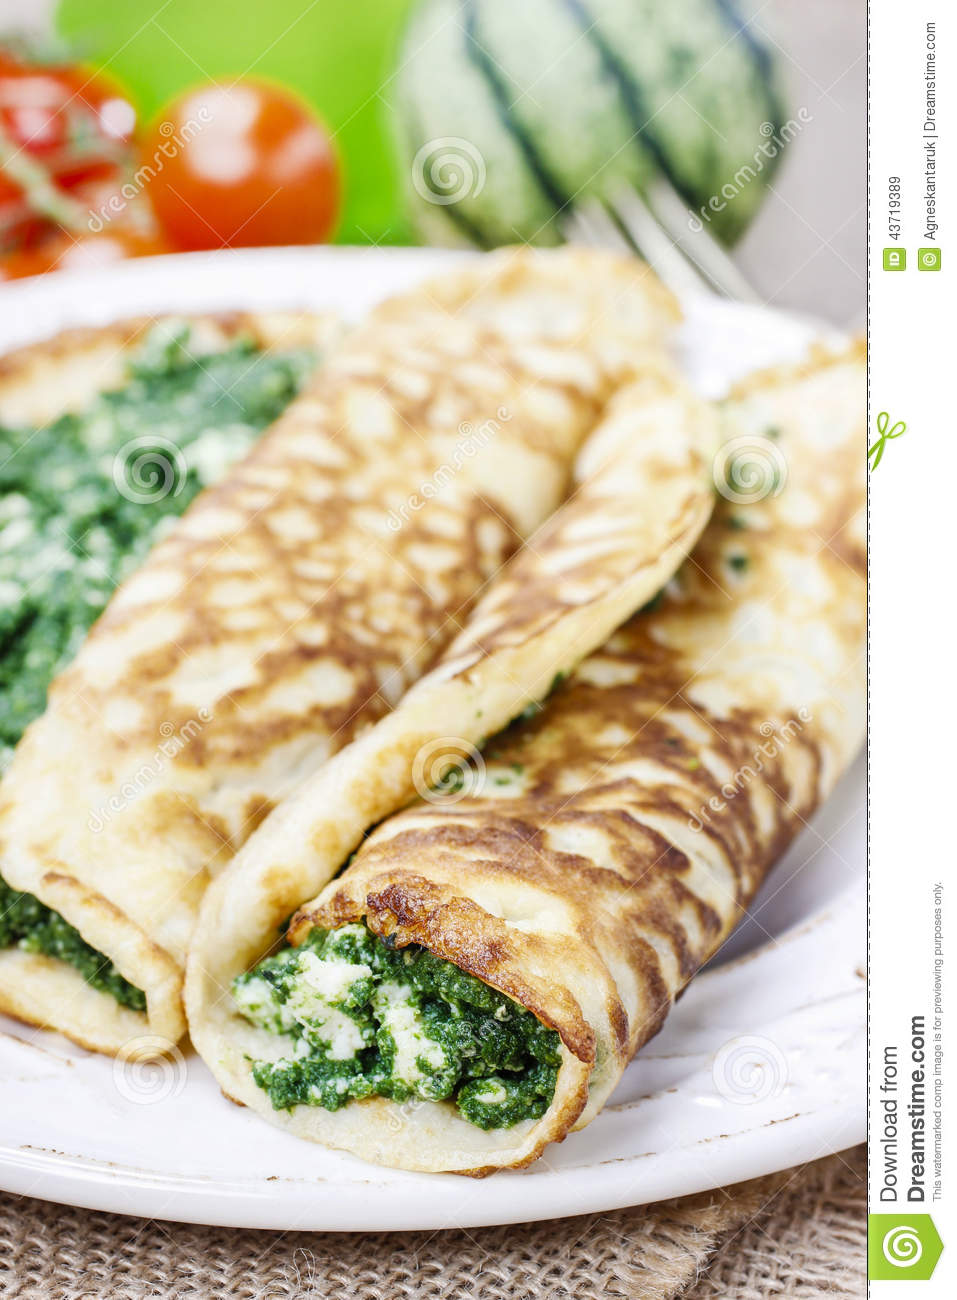 Mediterranean cuisine crepes stuffed with cheese and for About mediterranean cuisine